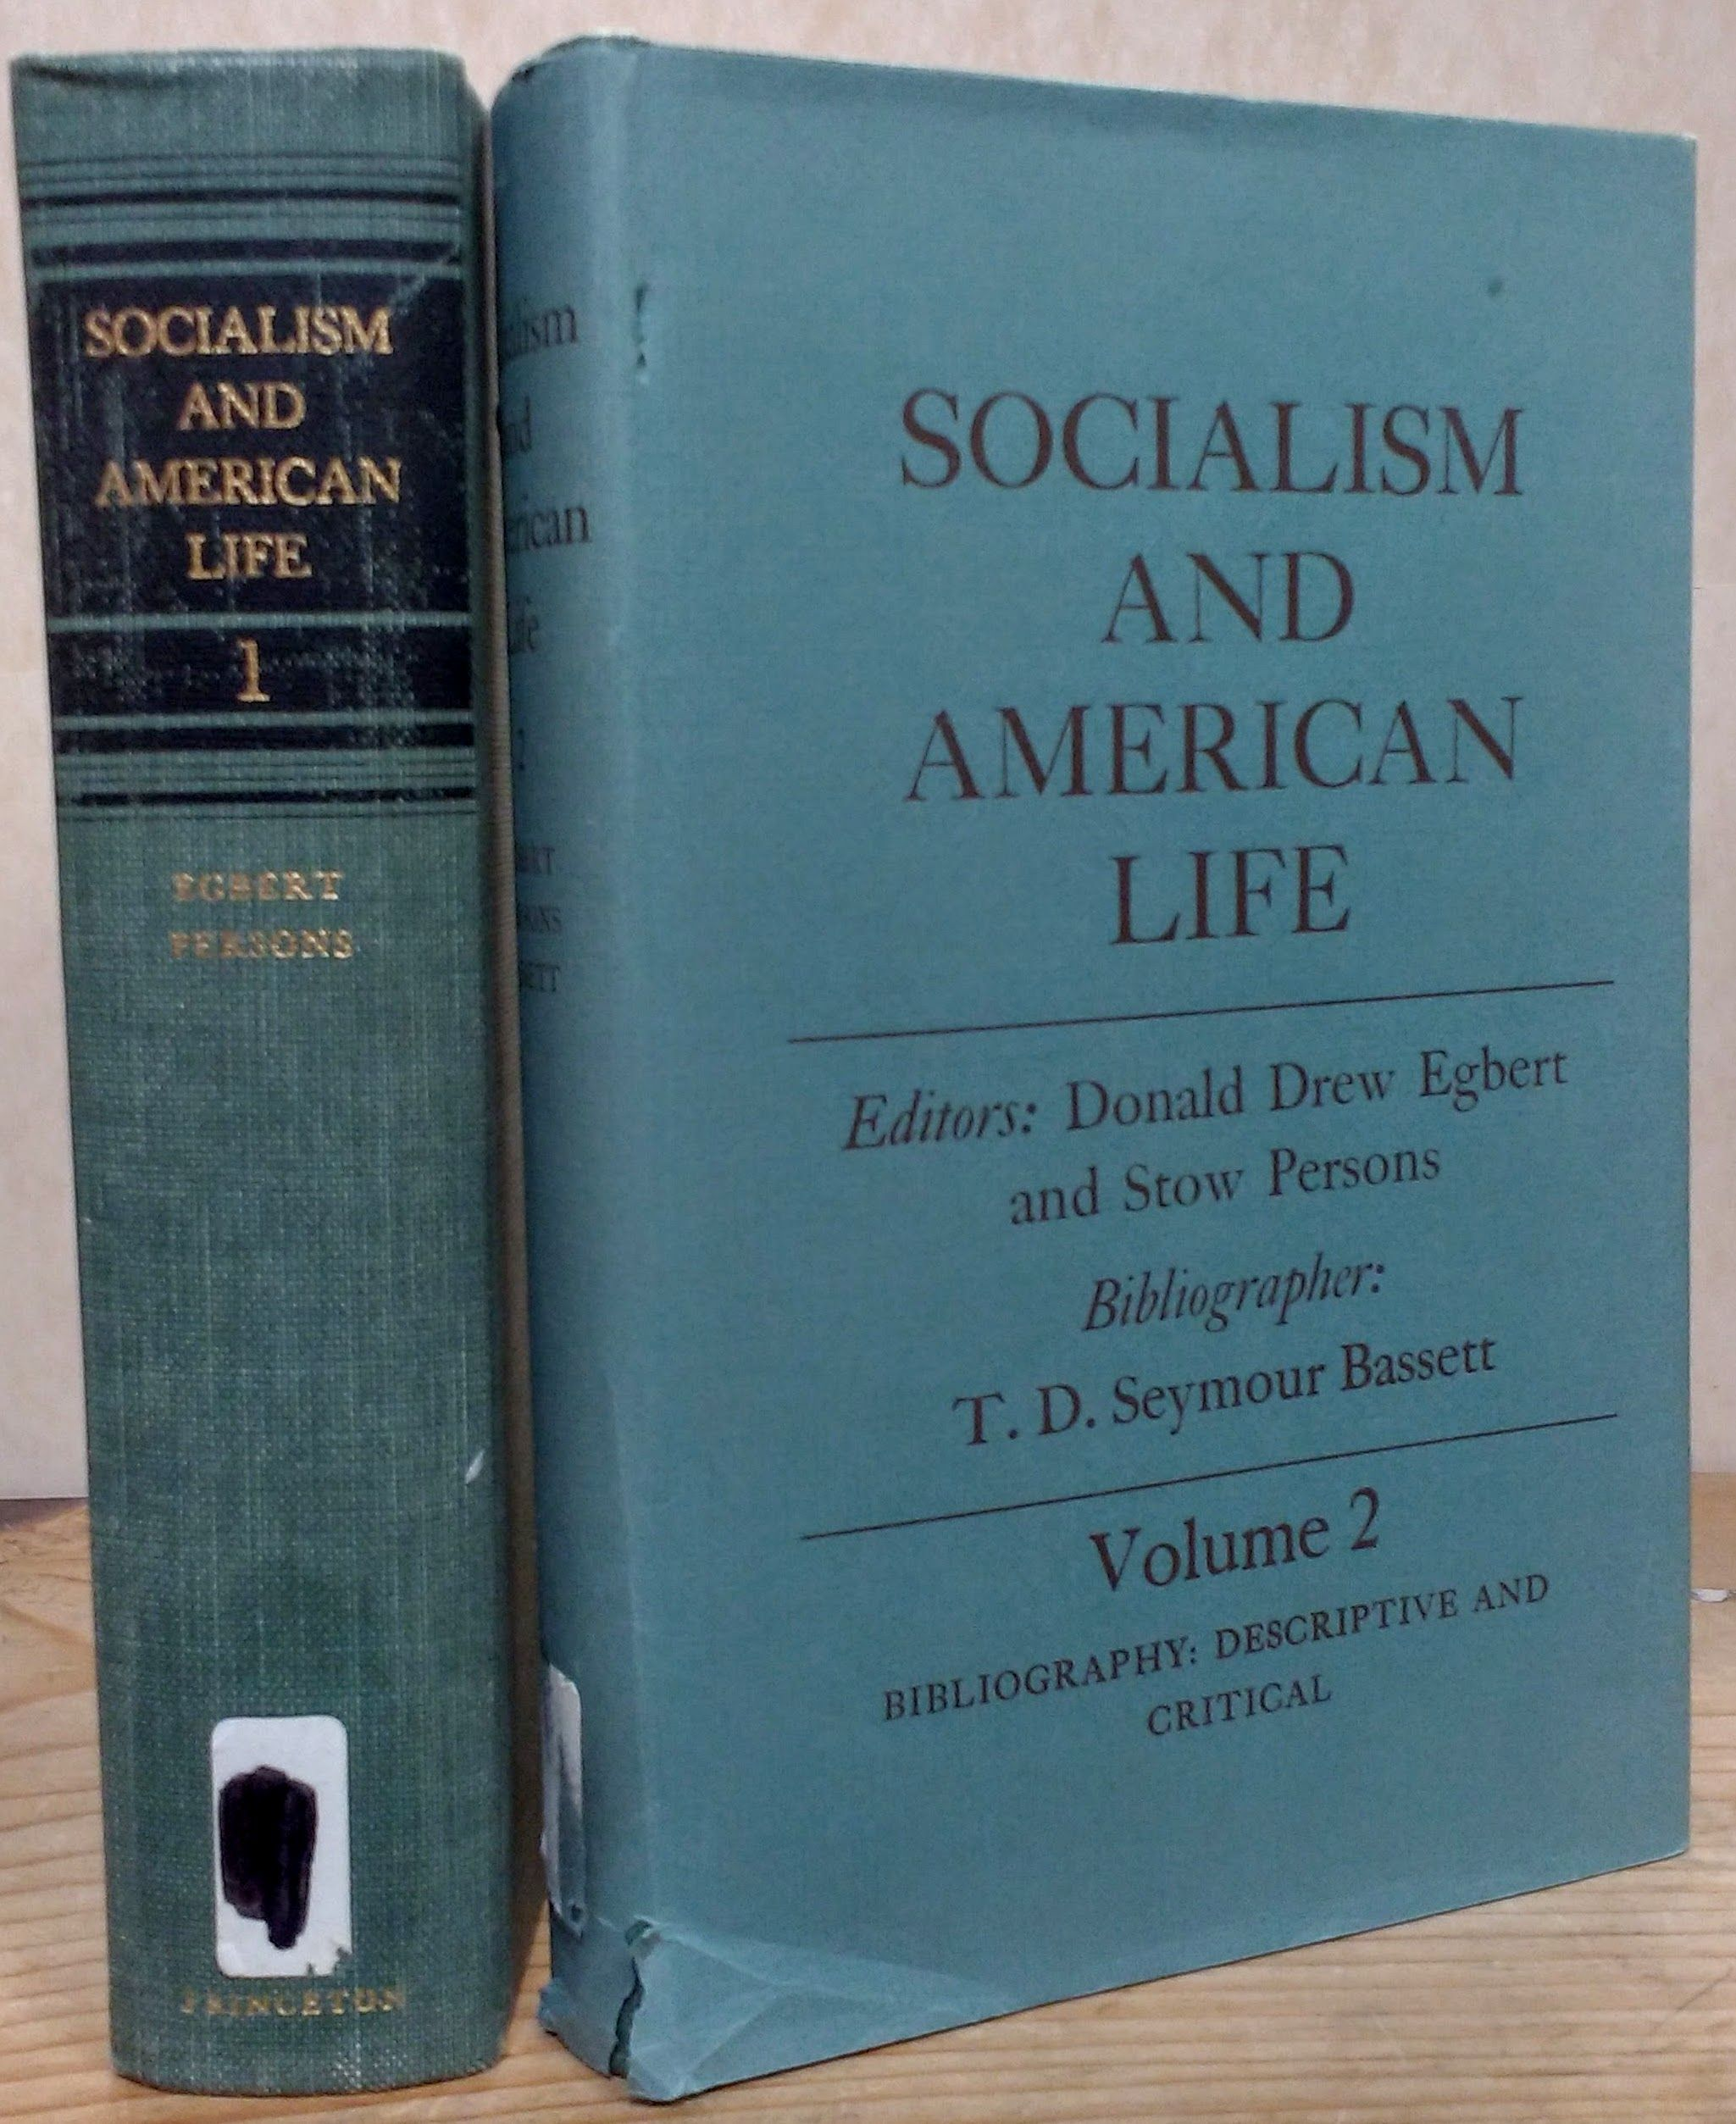 Socialism and American Life, Egbert, Donald Drew and Stow Persons, Eds